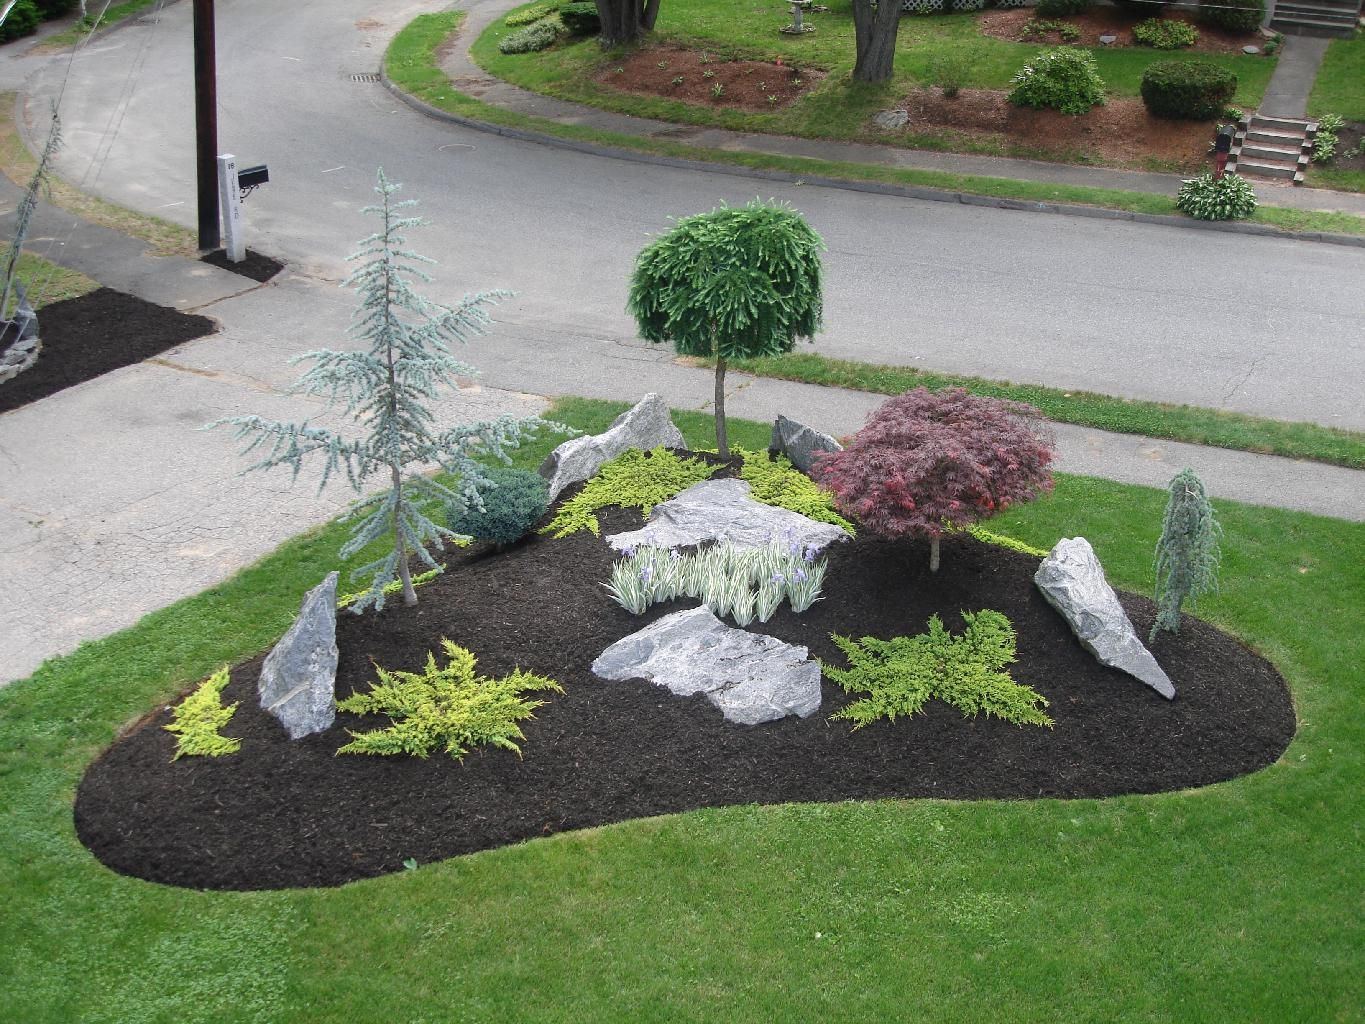 Simple landscape designs with rock beds google search for Lawn and garden landscaping ideas